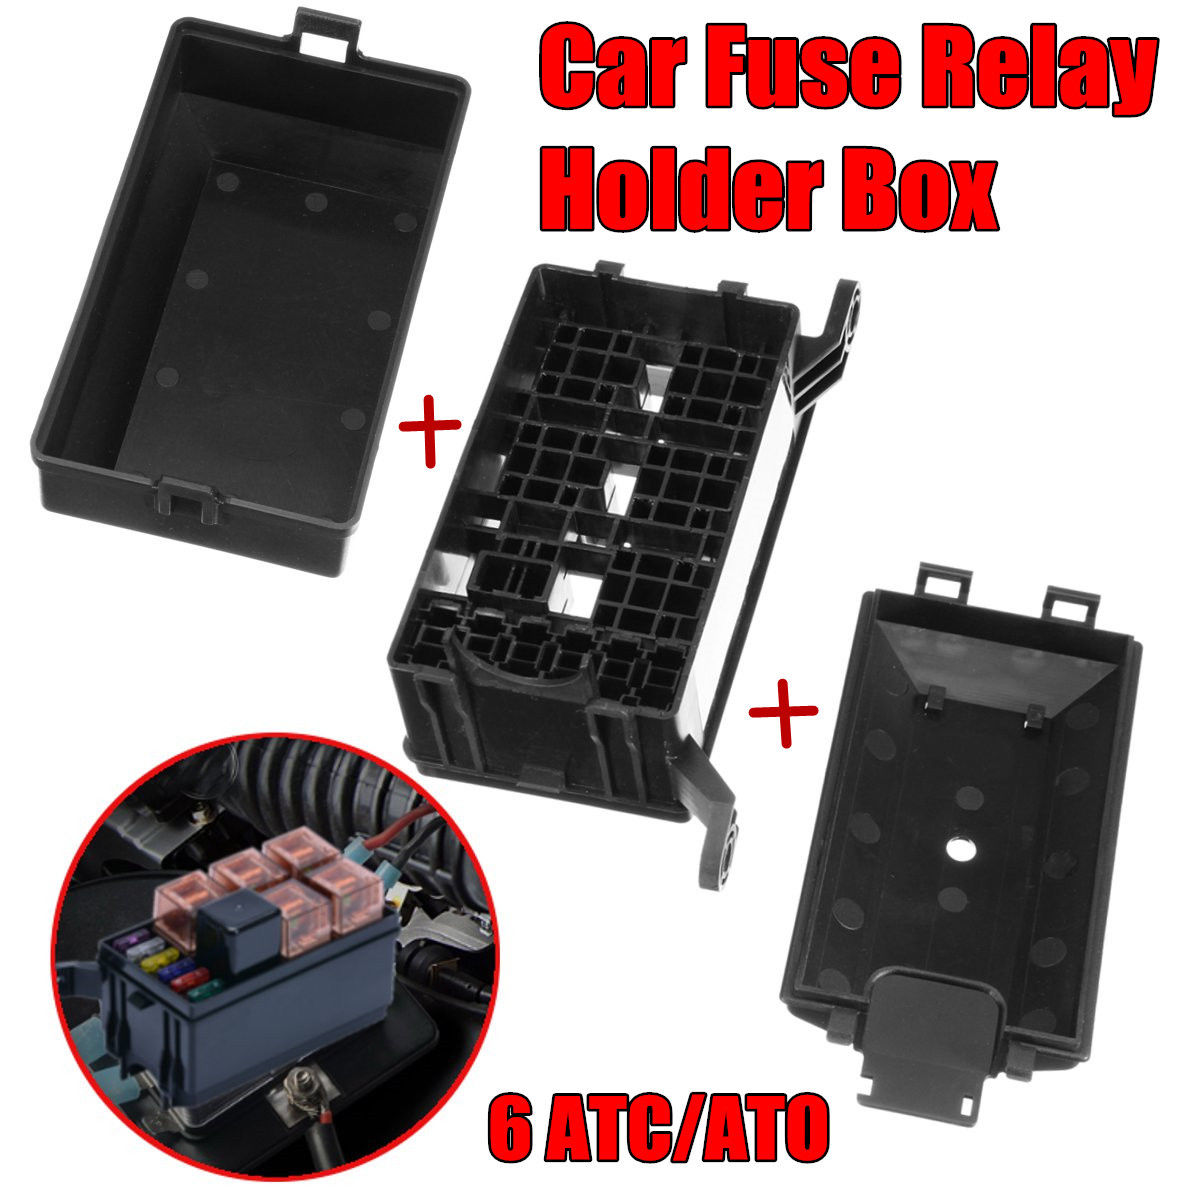 Awesome Autos Relay Fuse Box 6 5 Road Compartment Insurance Vehicle Cover Car Holder 2017 2018